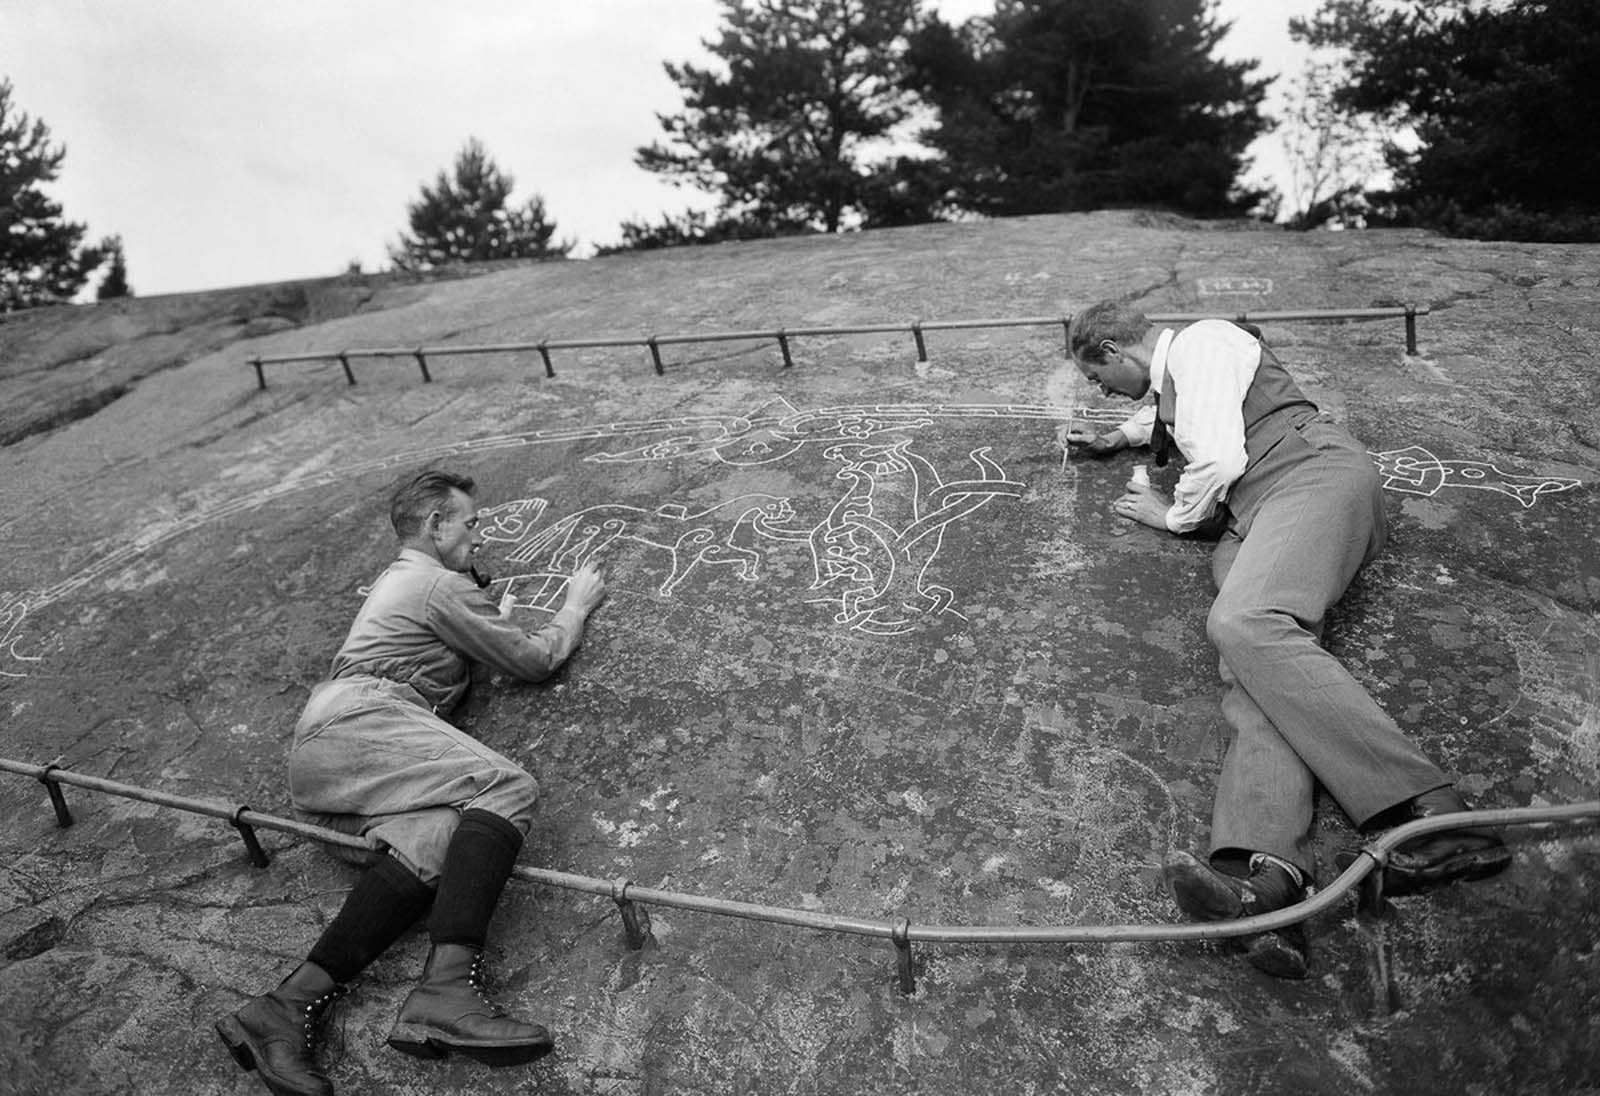 Harald Faith-Ell and Elias Wessén paint in the runes of the Sigurd carving on the Ramsund rock. The Viking Age carving depicts the Old Norse Sigurd saga, about the hero Sigurd who killed the dragon Fafner. The inscription reads,